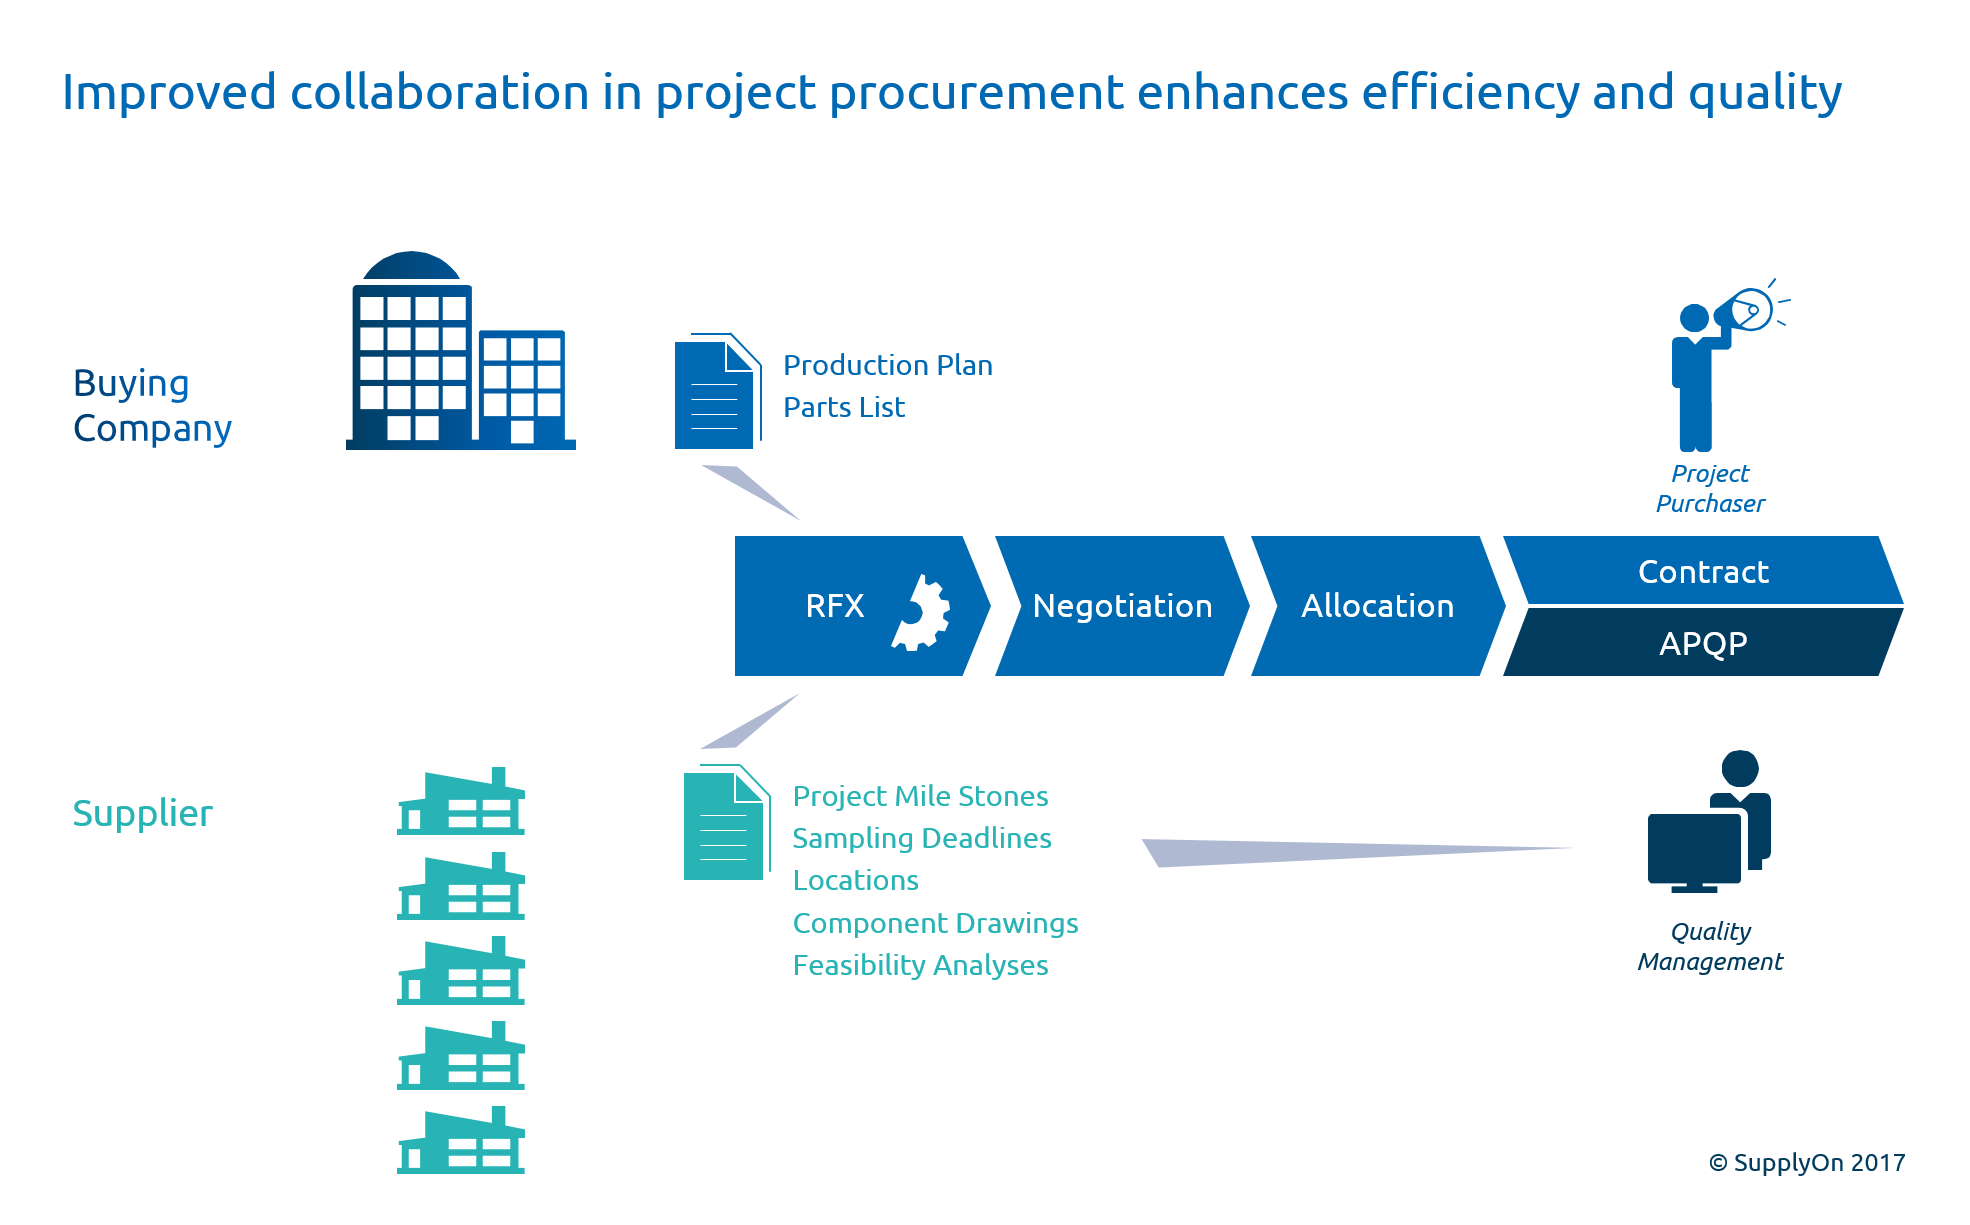 In project procurement, a close collaboration with quality management pays off